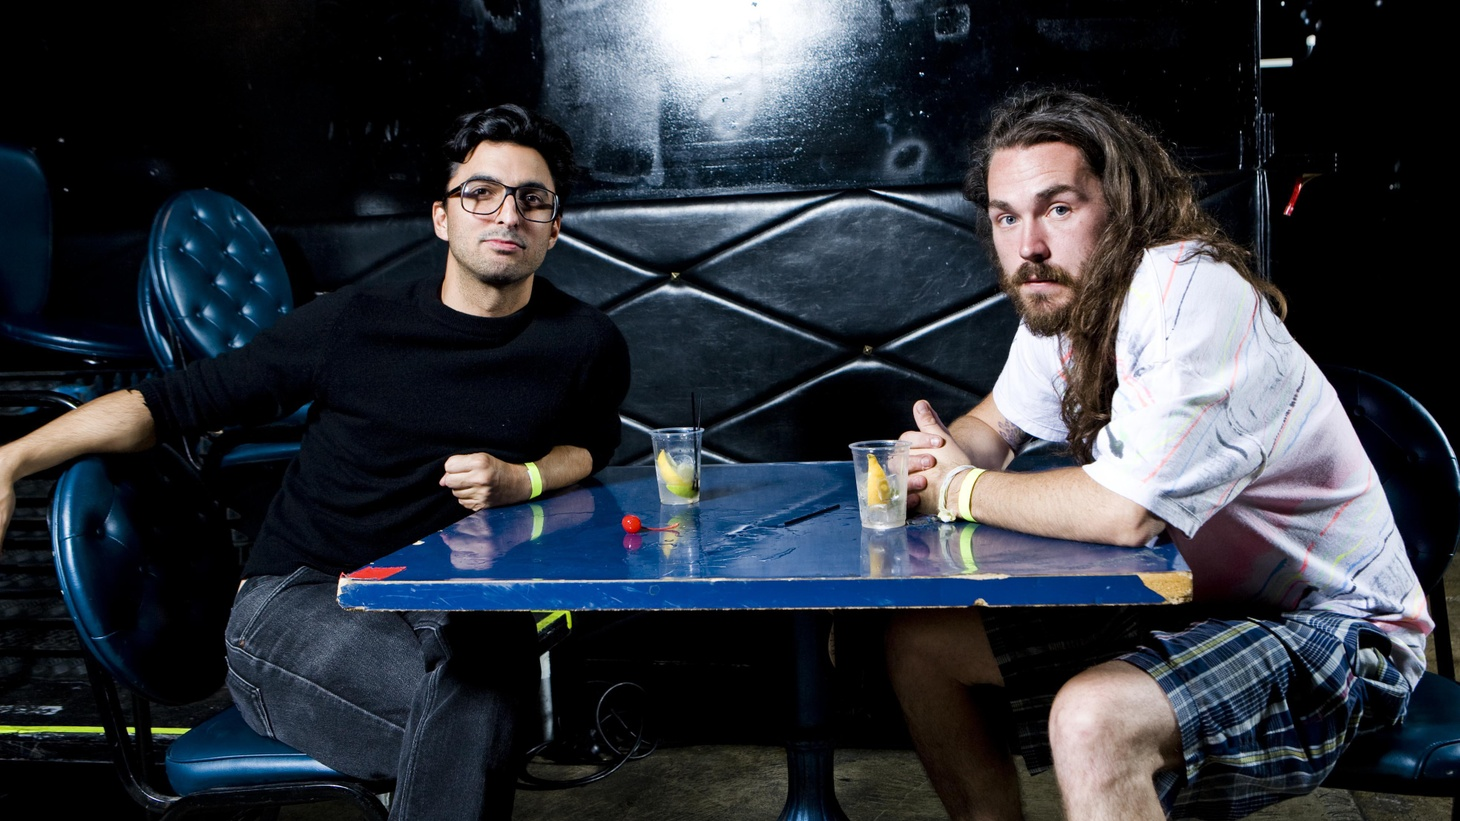 """L.A. duo Jogger crafts songs from sonic scraps on album This Great Pressure. Their meticulous attention to the detail of each song can have them working on one track for months. I recommend headphones to fully experience the textures and layers of Today's Top Tune """"Gorilla Meat""""."""